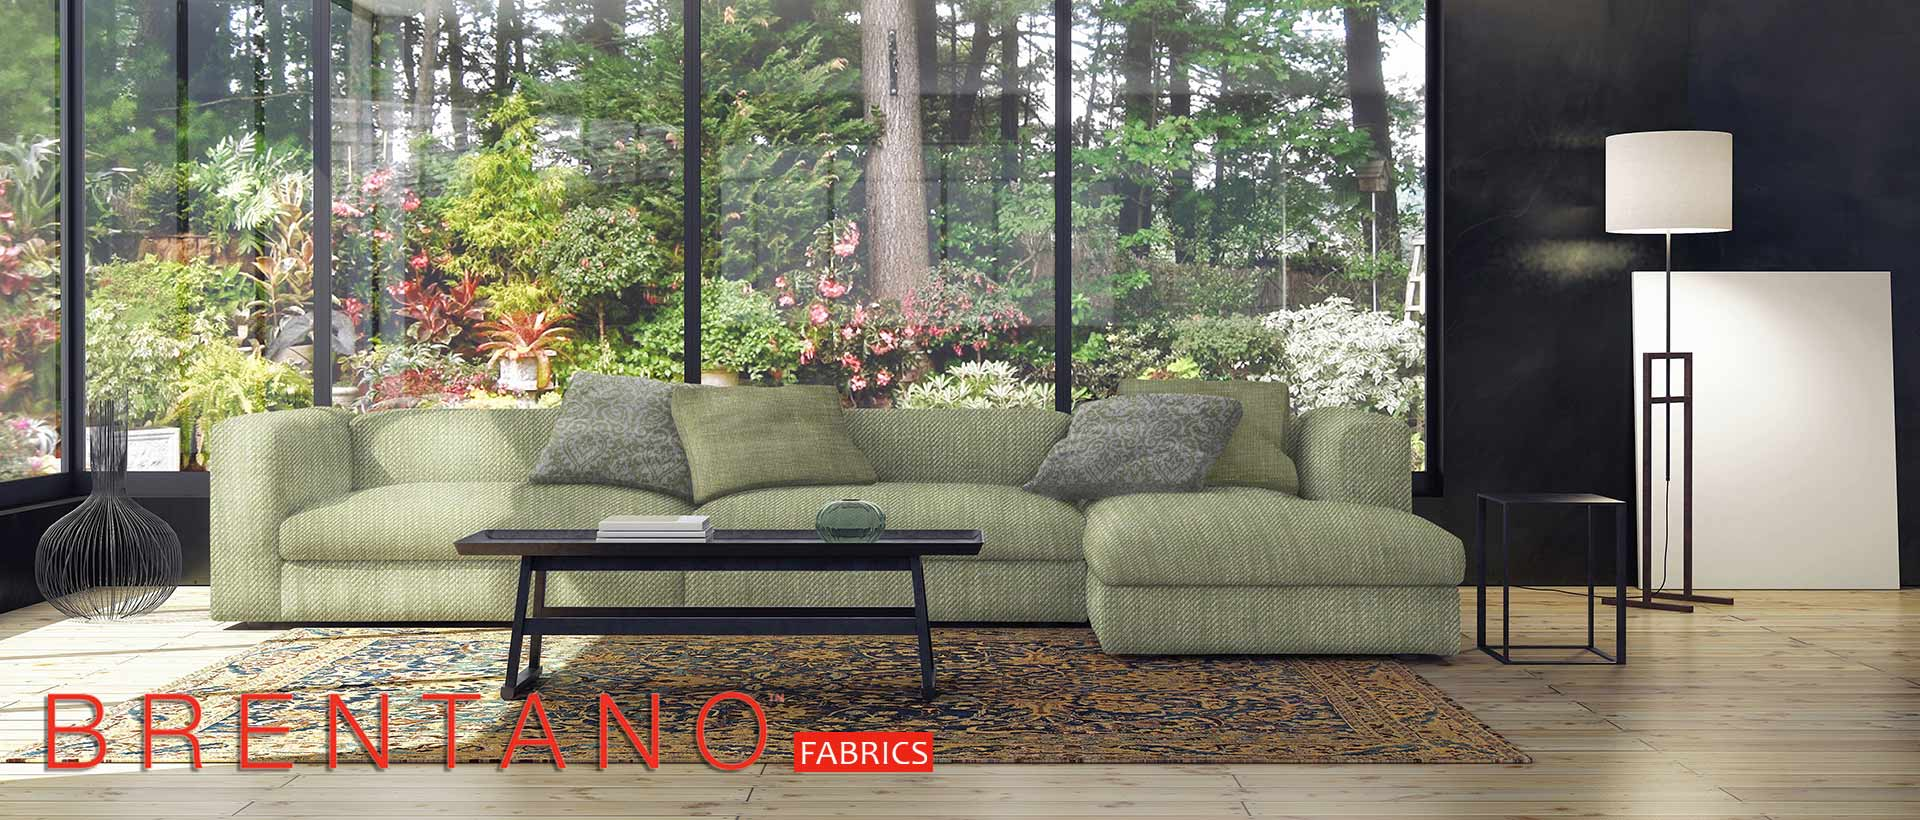 Shop Brentano Fabric Collections